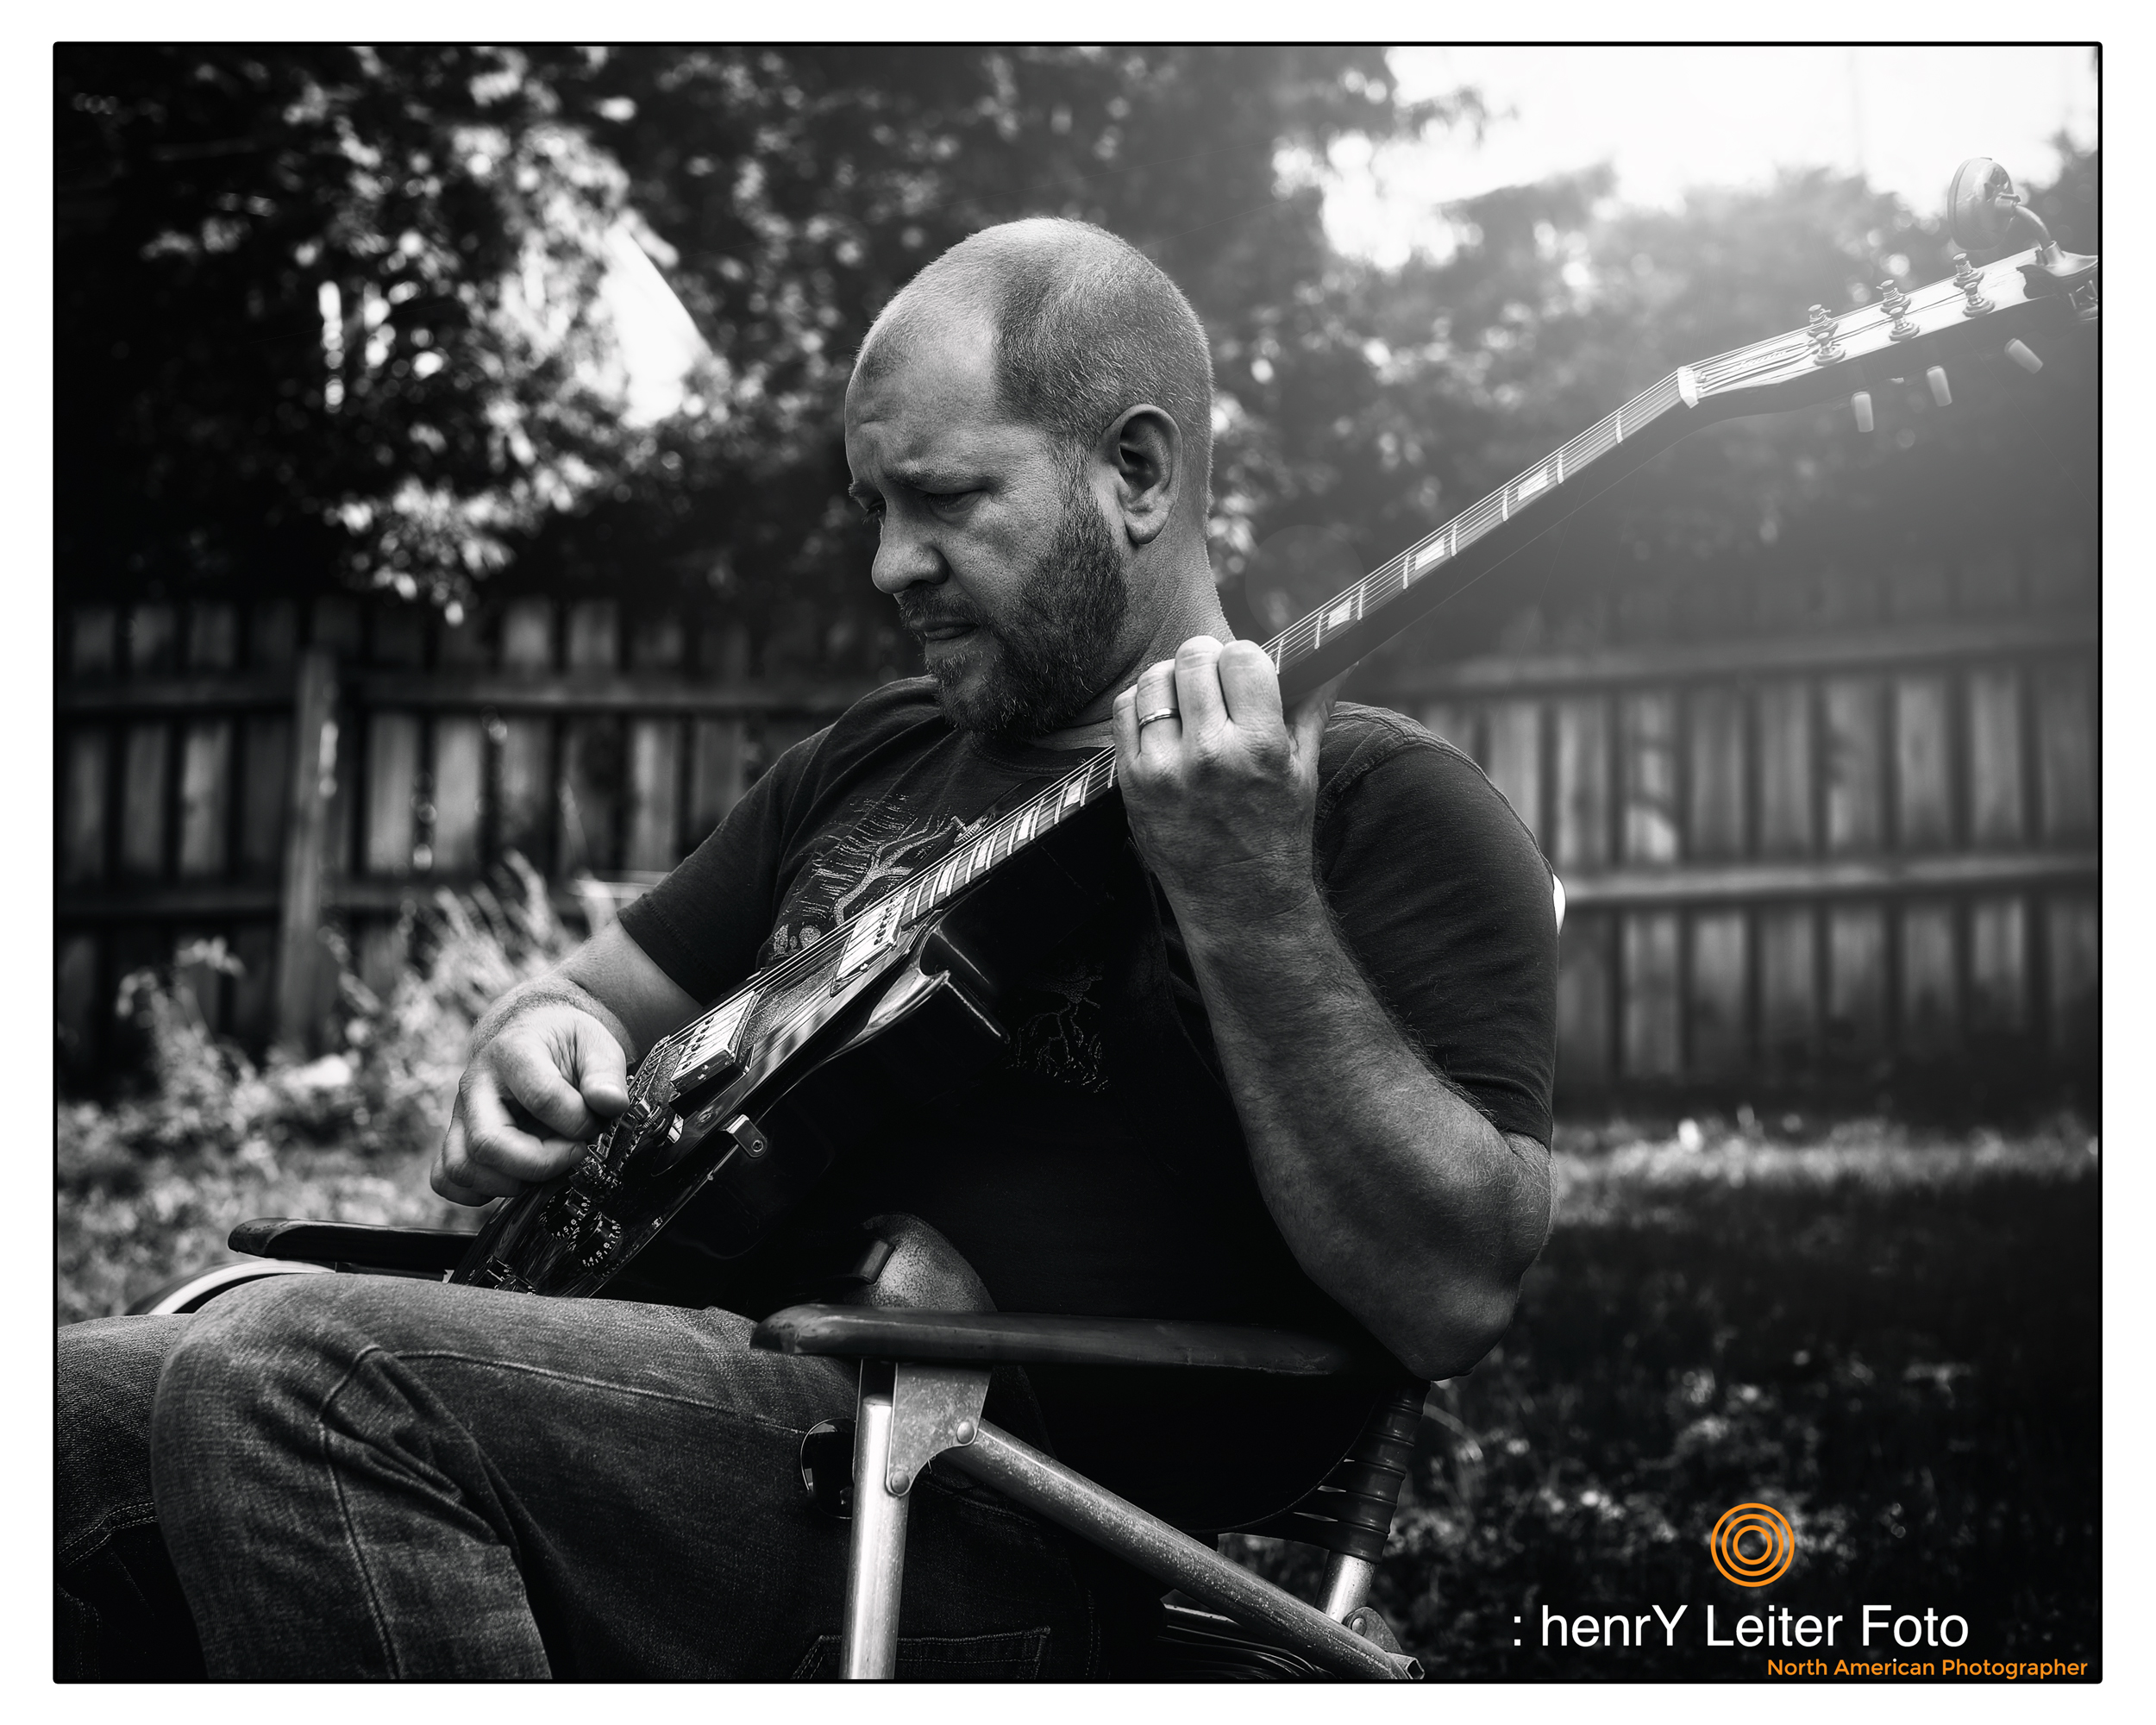 Portrait of the musician and artist Joe Tokarsky by photographer henrY Leiter